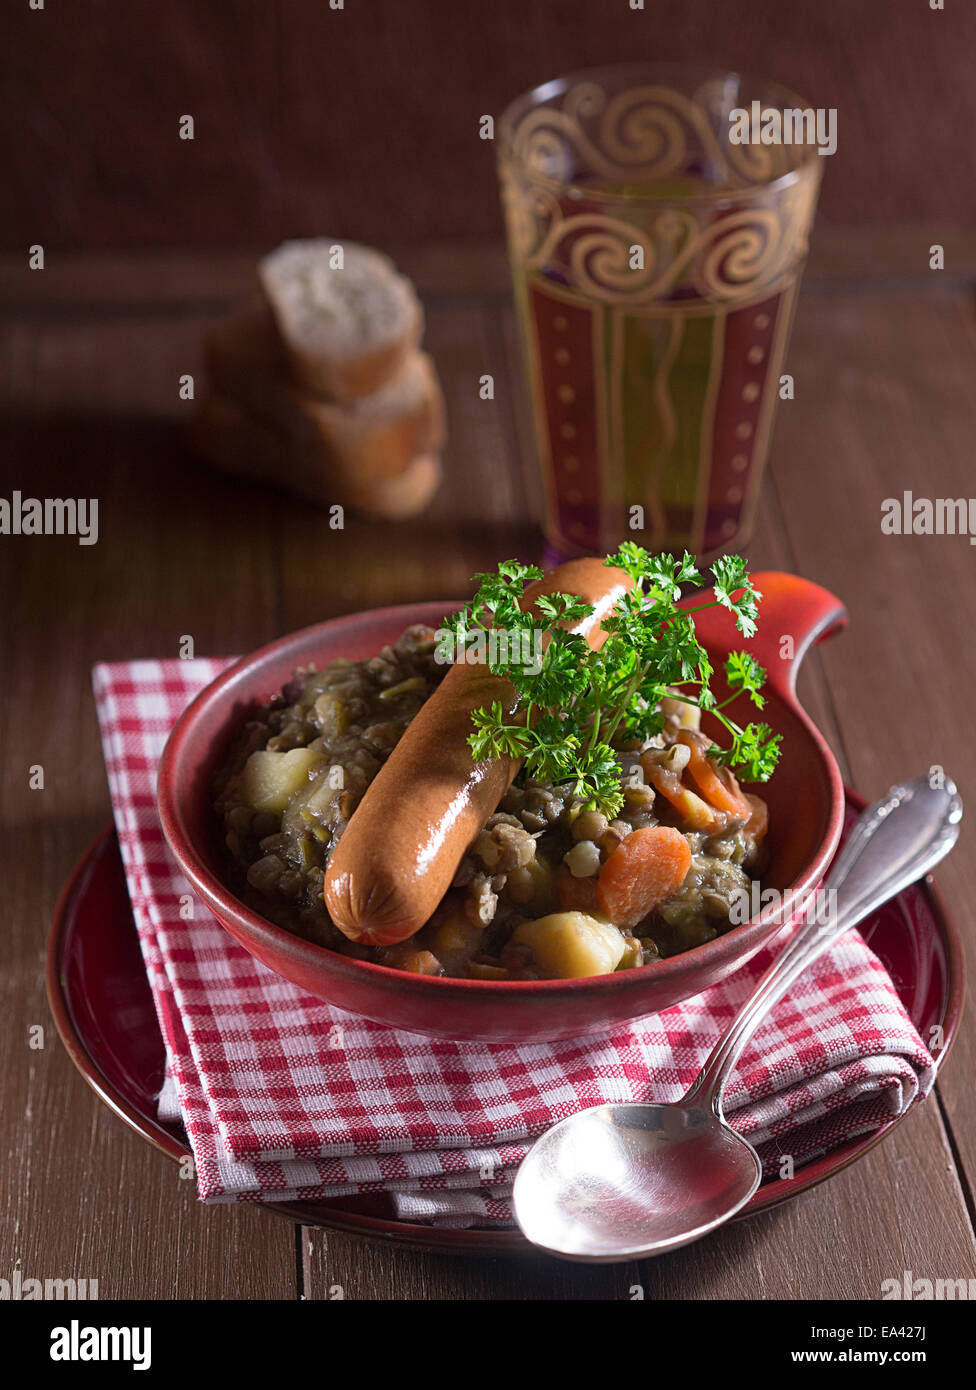 Lentil soup with sausages in a bowl Stock Photo